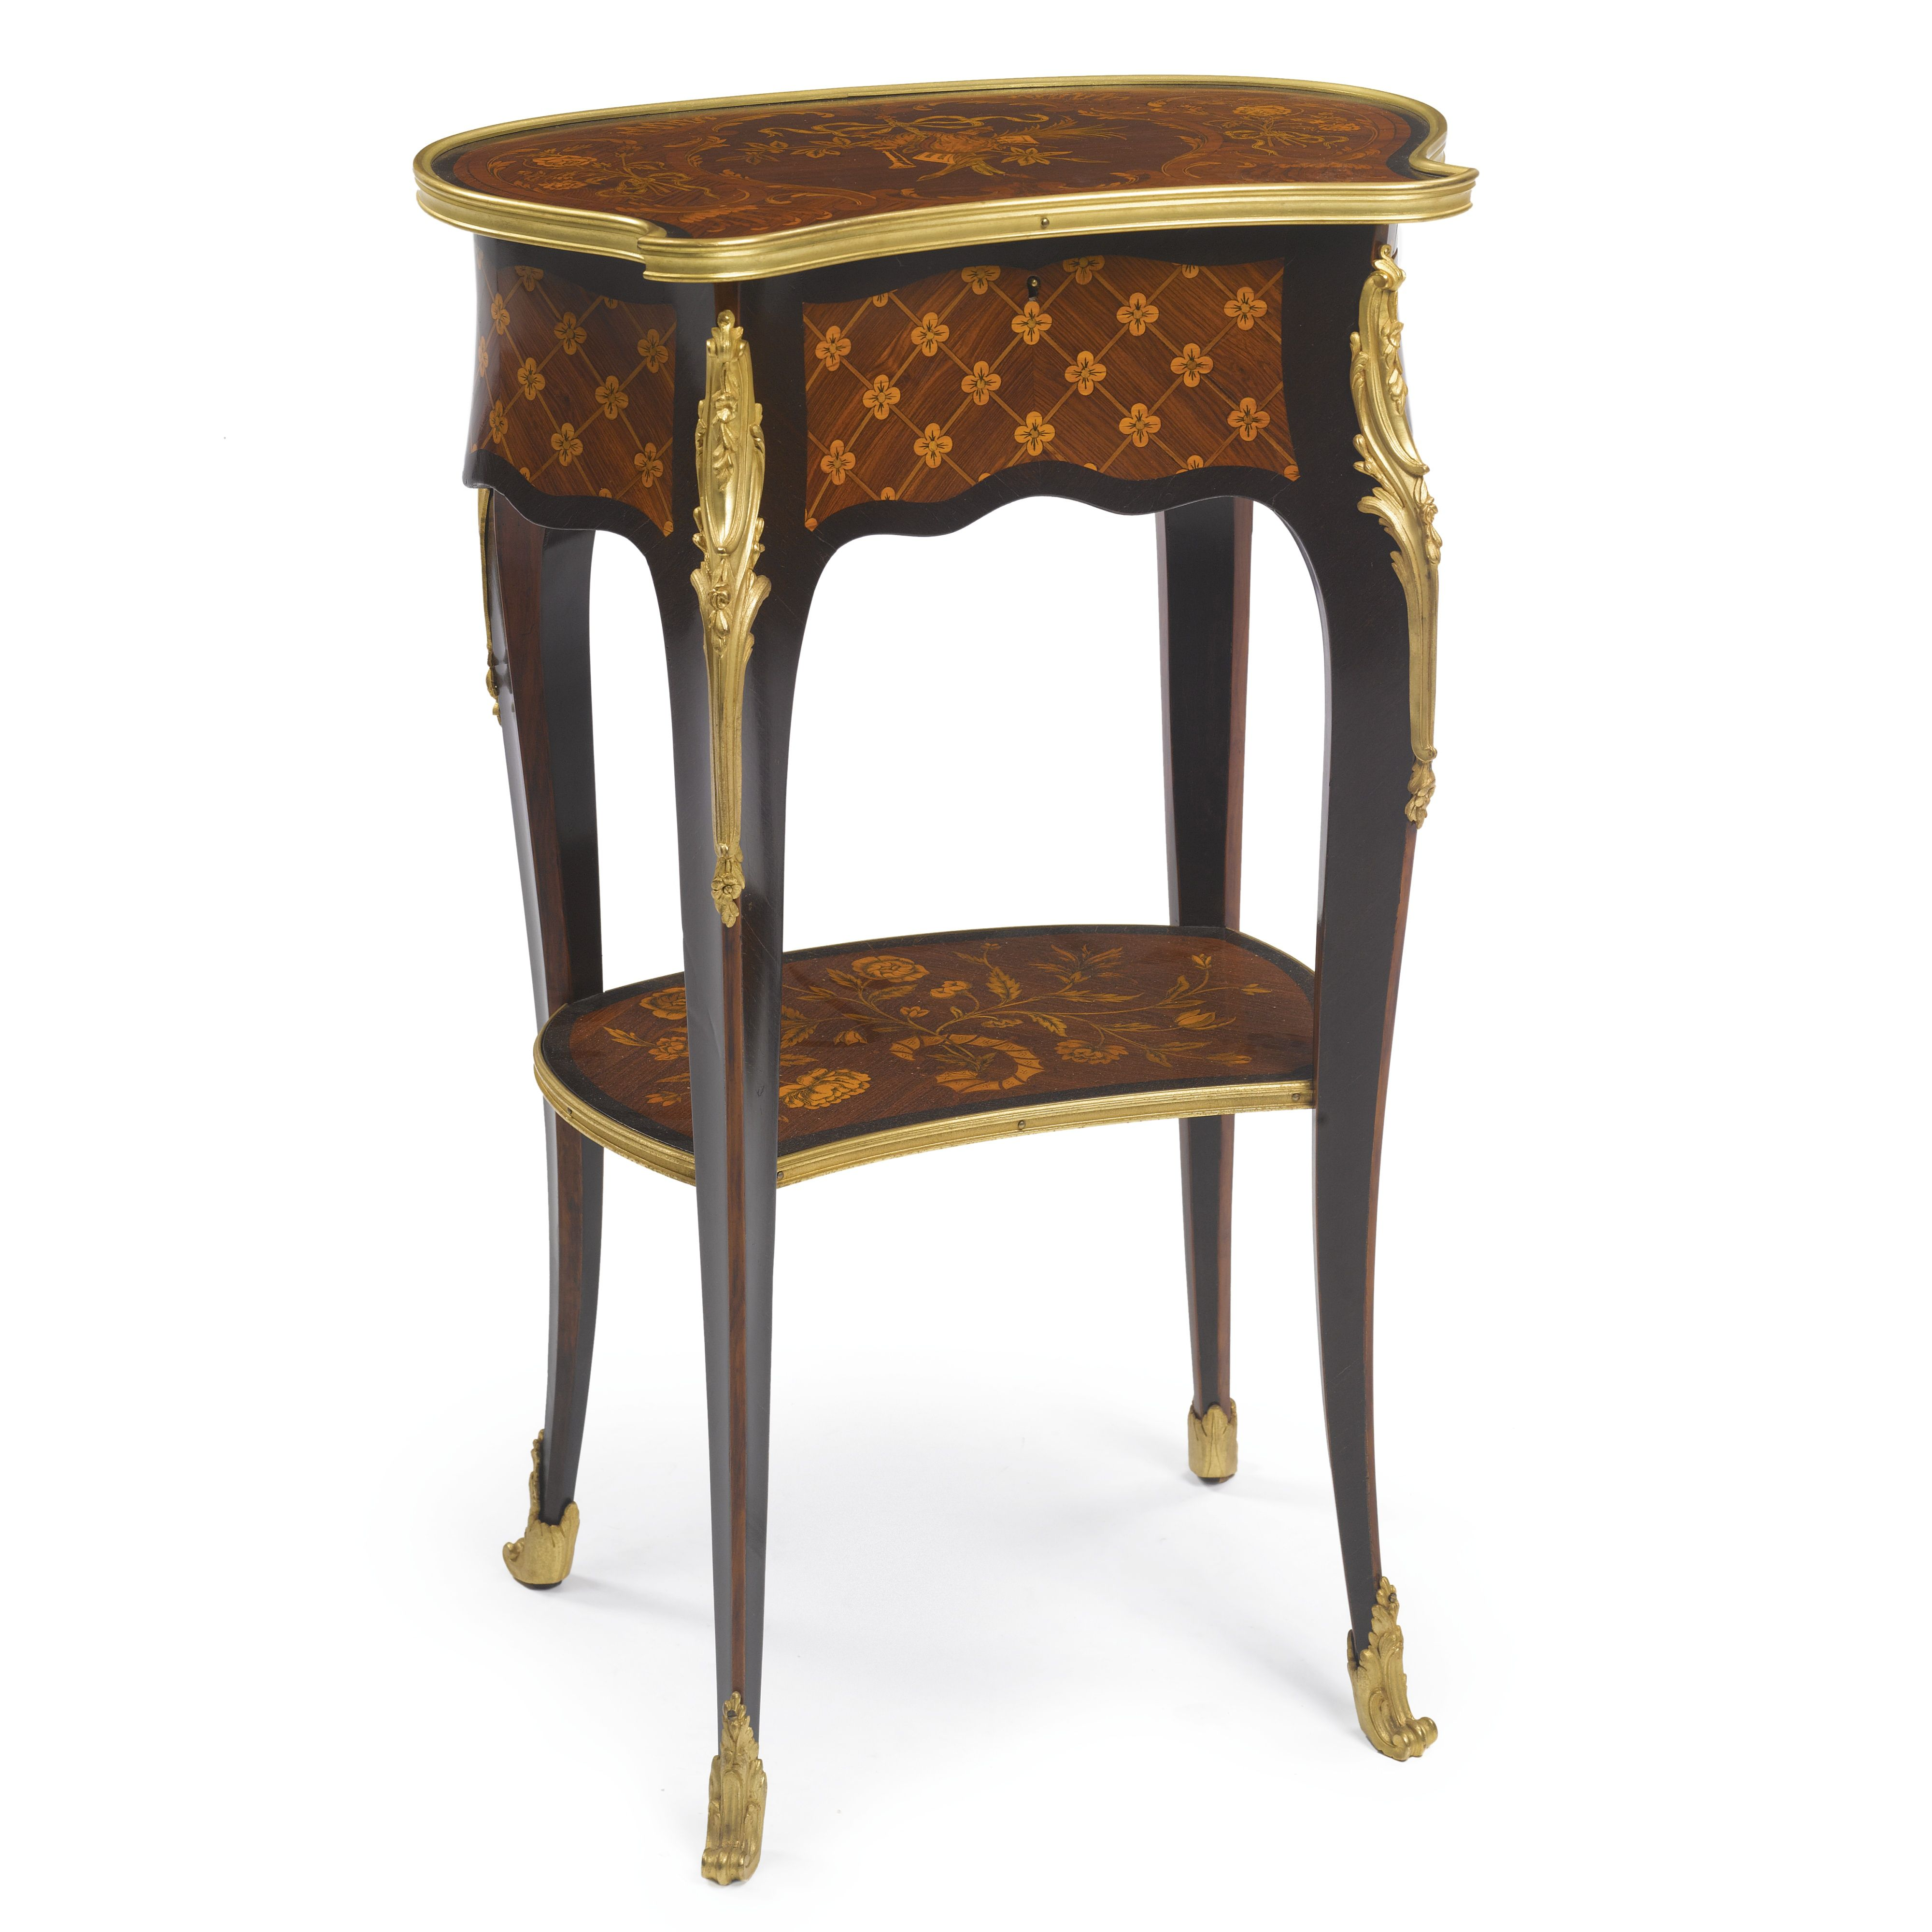 A LOUIS XV STYLE GILT-BRONZE MOUNTED PURPLEWOOD, KINGWOOD AND SATINWOOD FLOWER-HEAD TRELLIS PARQUETRY AND VARIEGATED FRUITWOOD FLORAL AND FOLIATE MARQUETRY WORKING TABLE PARIS, CIRCA 1900 the kidney shaped hinged top centered by a musical trophy with a bagpipe within a foliate cartouche, opening to a satinwood interior with three divided compartments, the frieze with a deep drawer to the righthand side height 29 1/4 in.; width 20 in.; depth 13 in. 74.5 cm; 51 cm; 33 cm